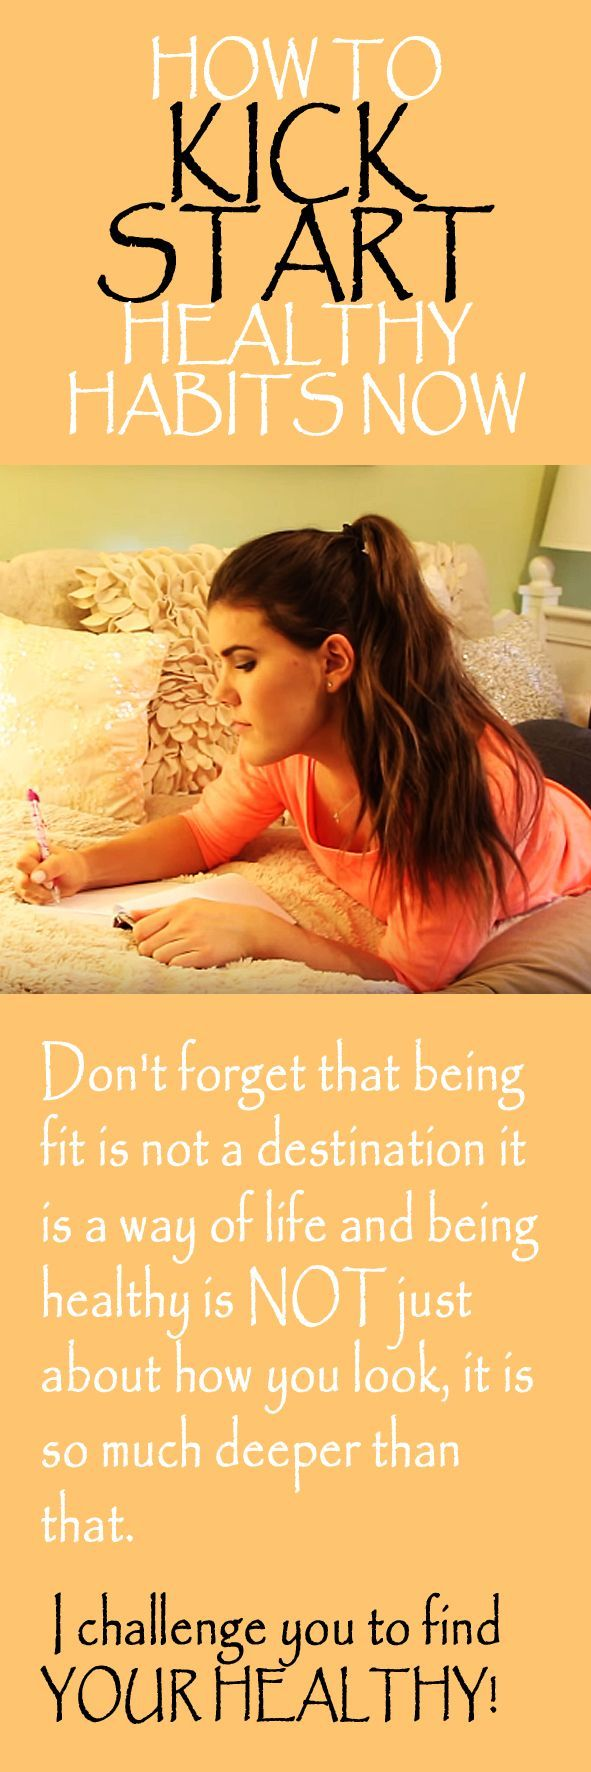 Best Tips For Starting A Healthy Lifestyle You Ca